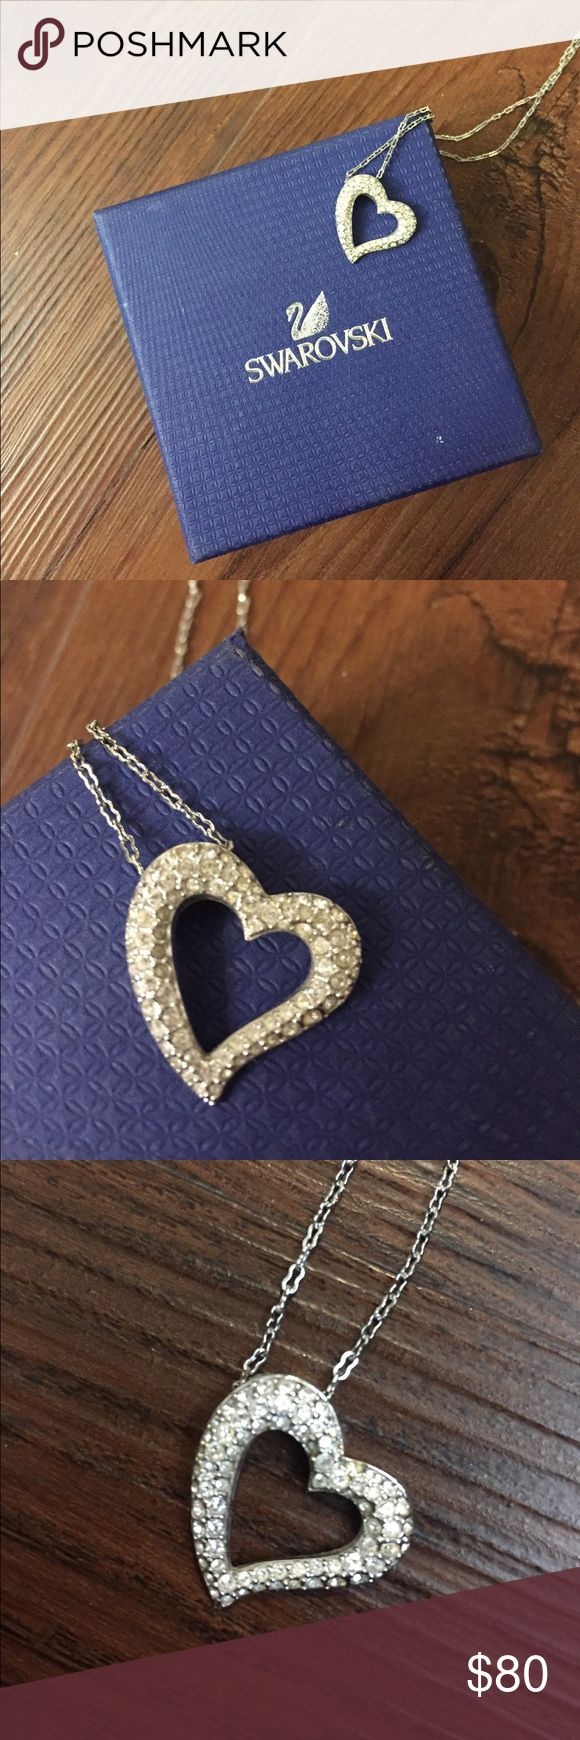 Swarovski Heart Necklce Like new! Only worn a couple times. Beautiful Swarovski heart pendant with silver chain. Authentic box included. Swarovski Jewelry Necklaces